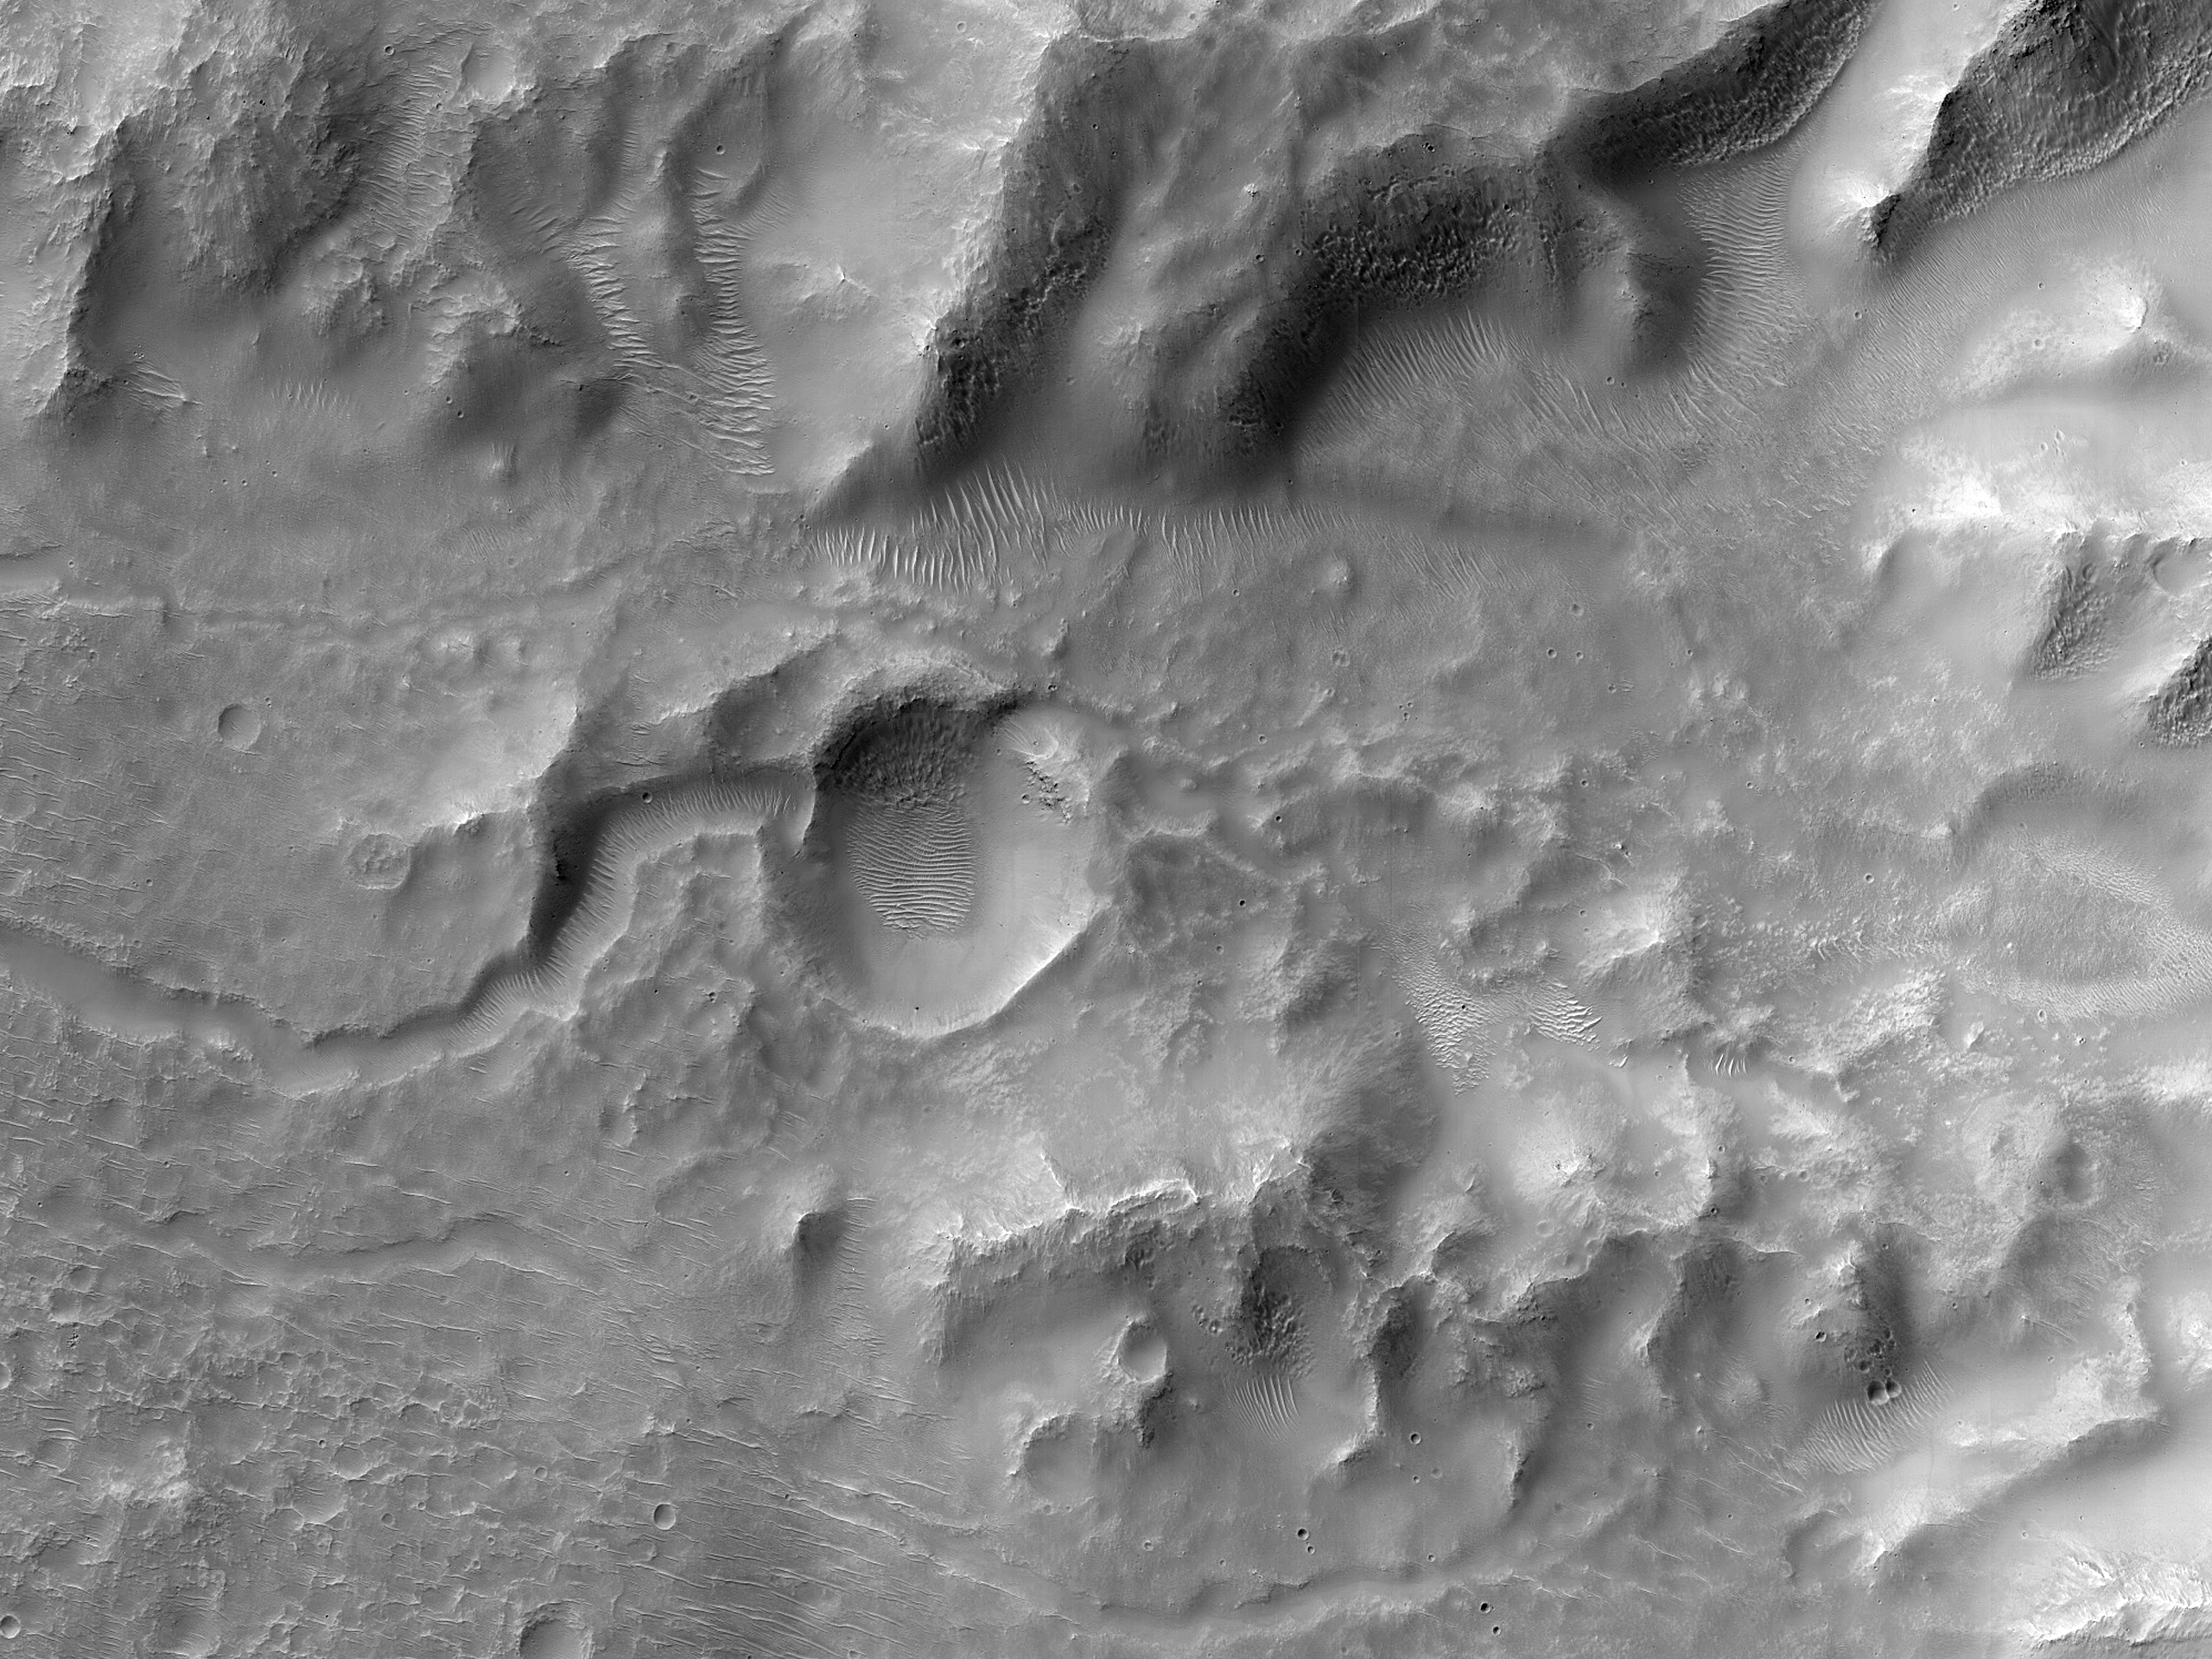 A Small Crater Northeast of Hellas Planitia